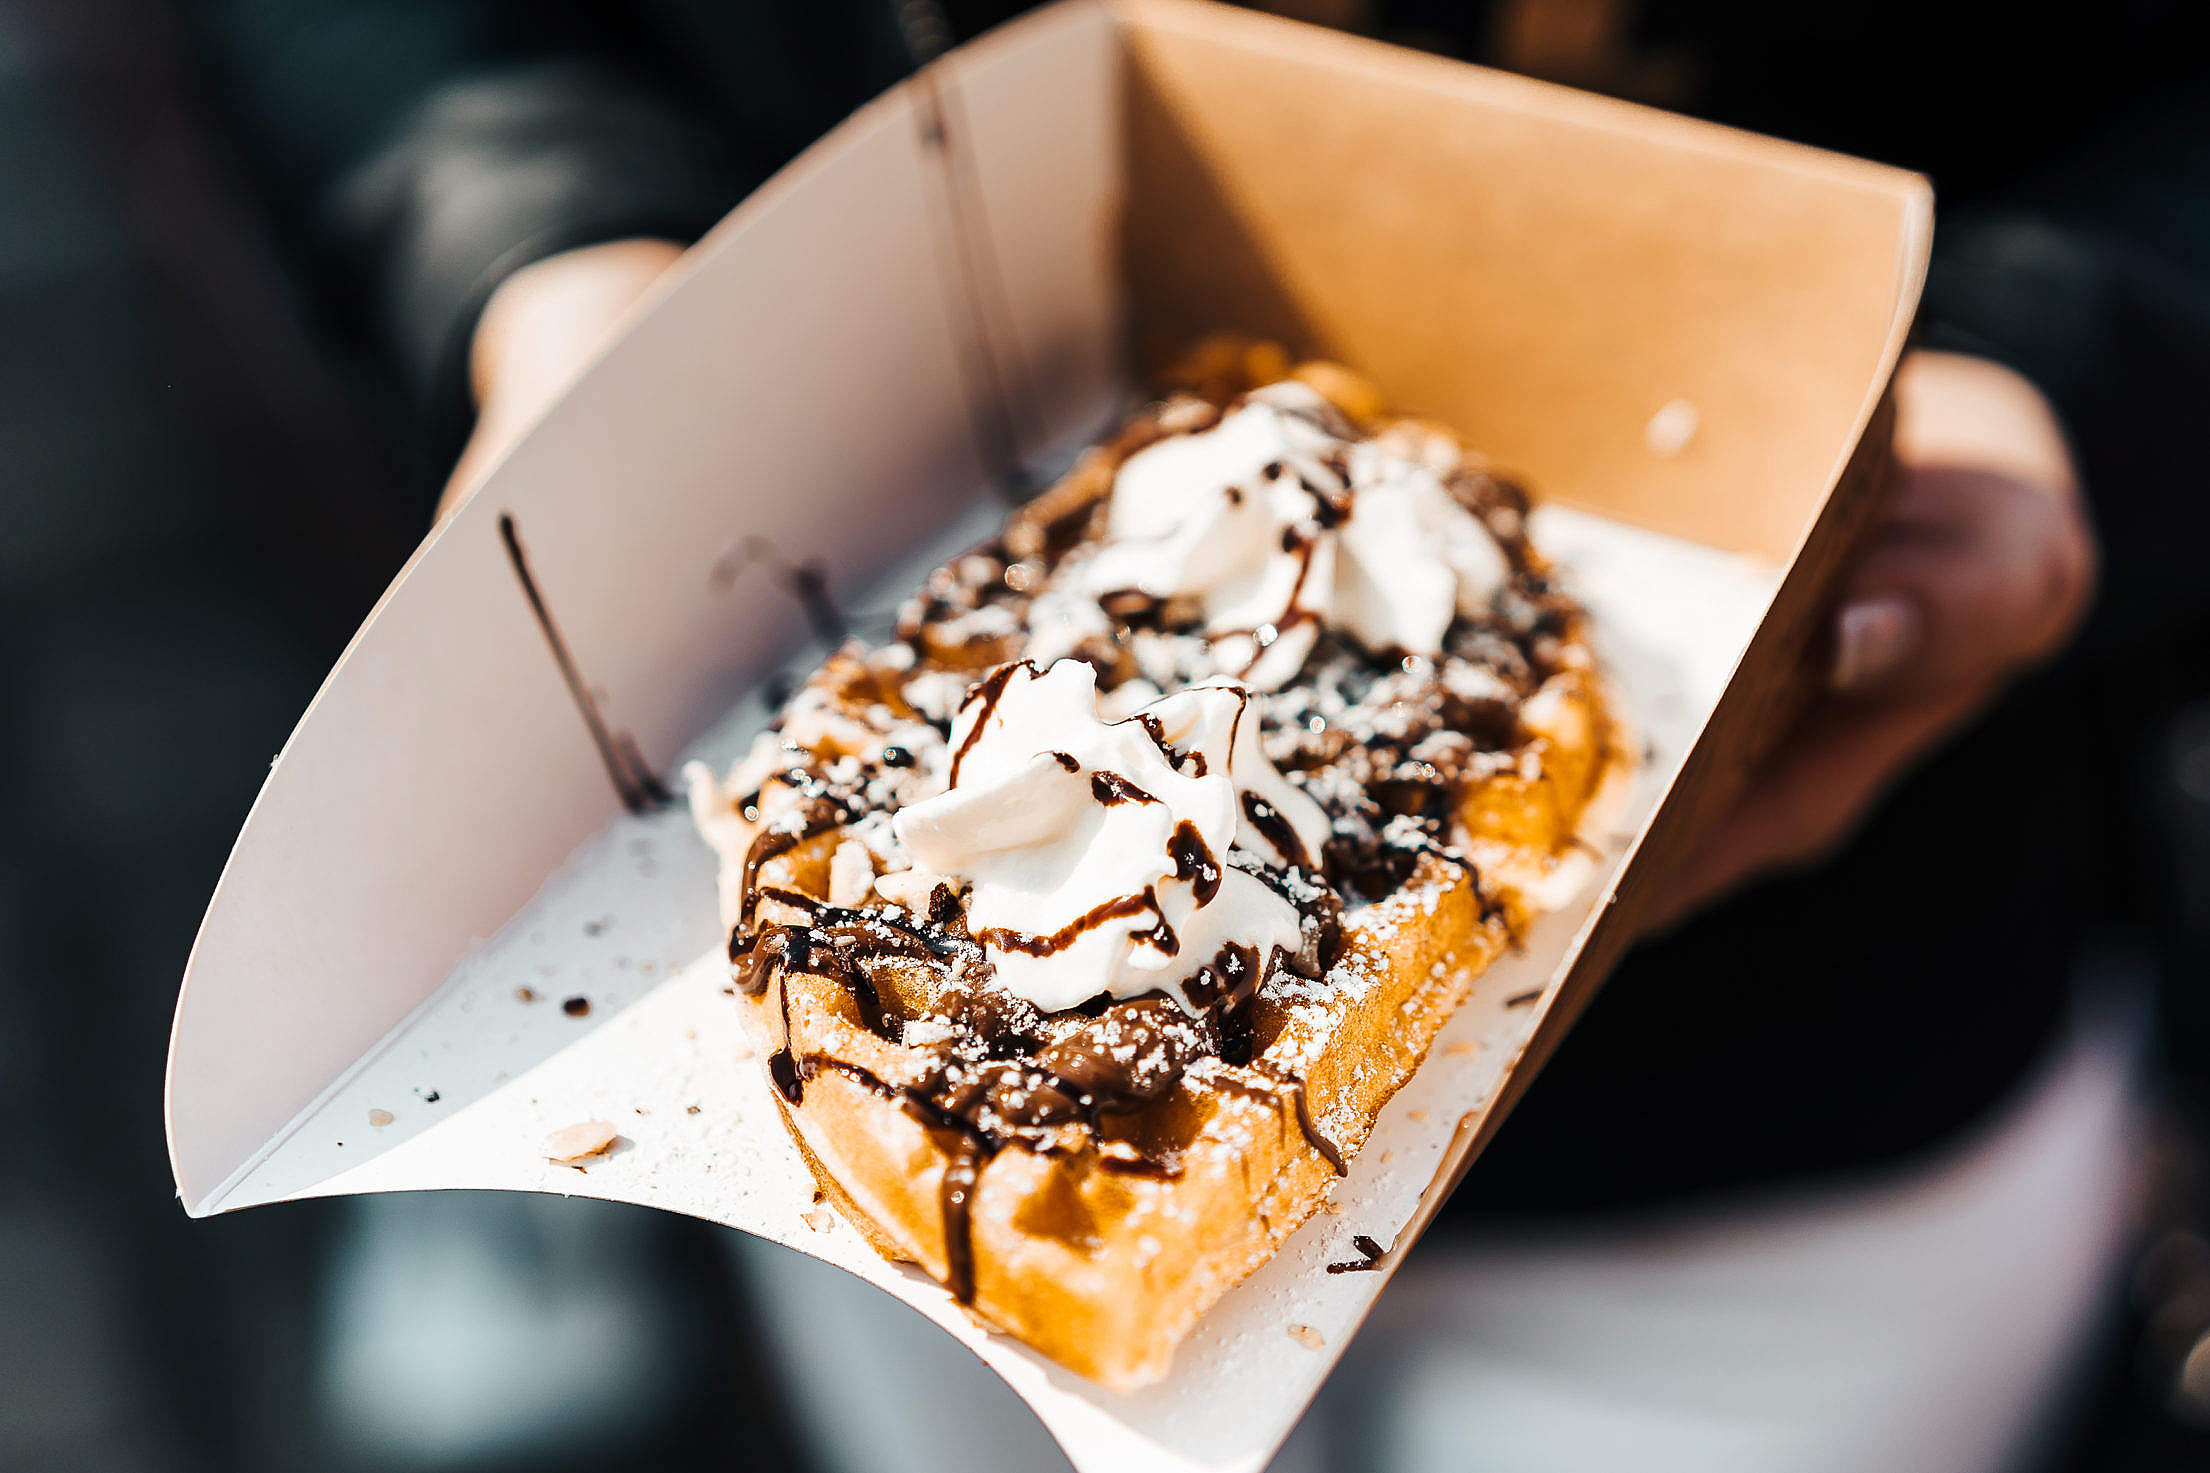 Yummy Chocolate Waffles from Open Air Food Market Free Stock Photo